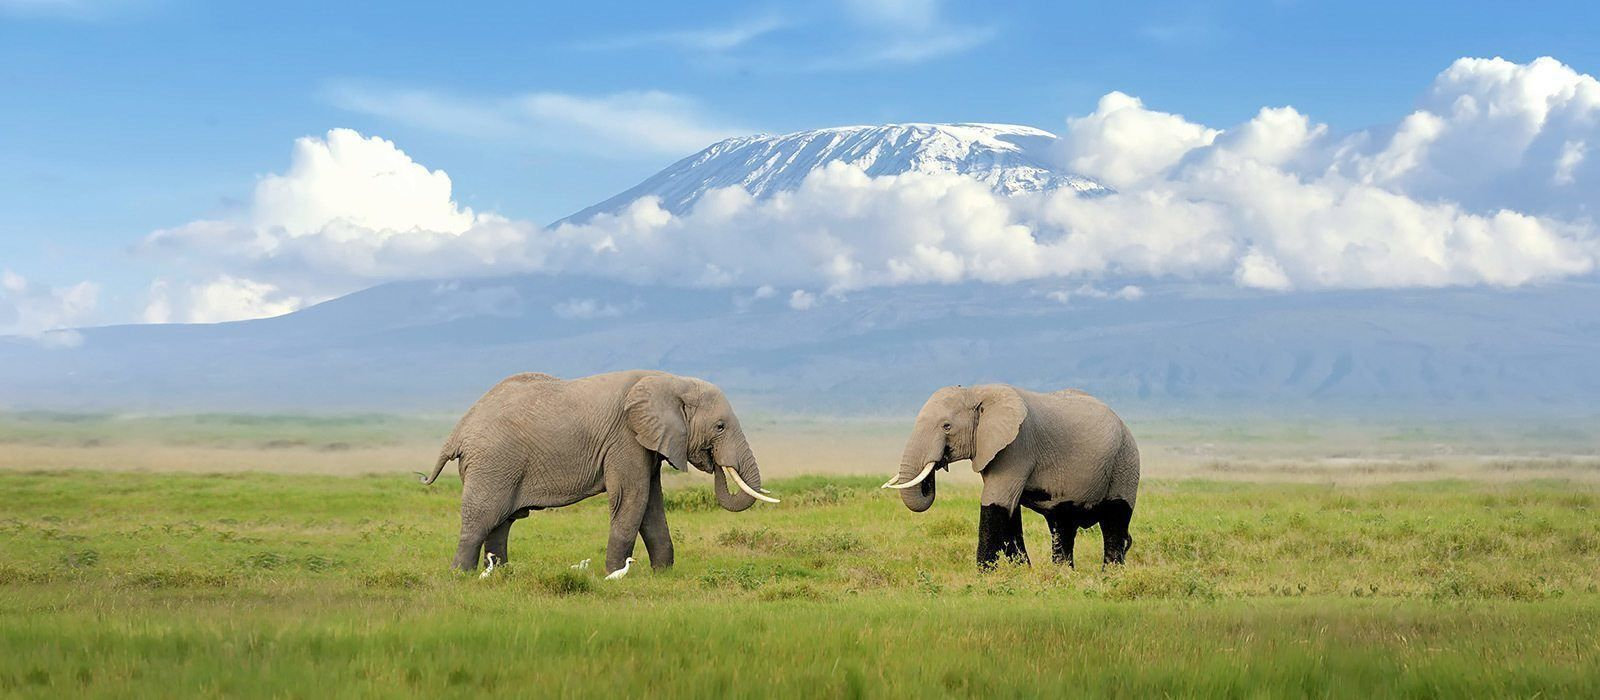 Destination Mt. Kilimanjaro Tanzania